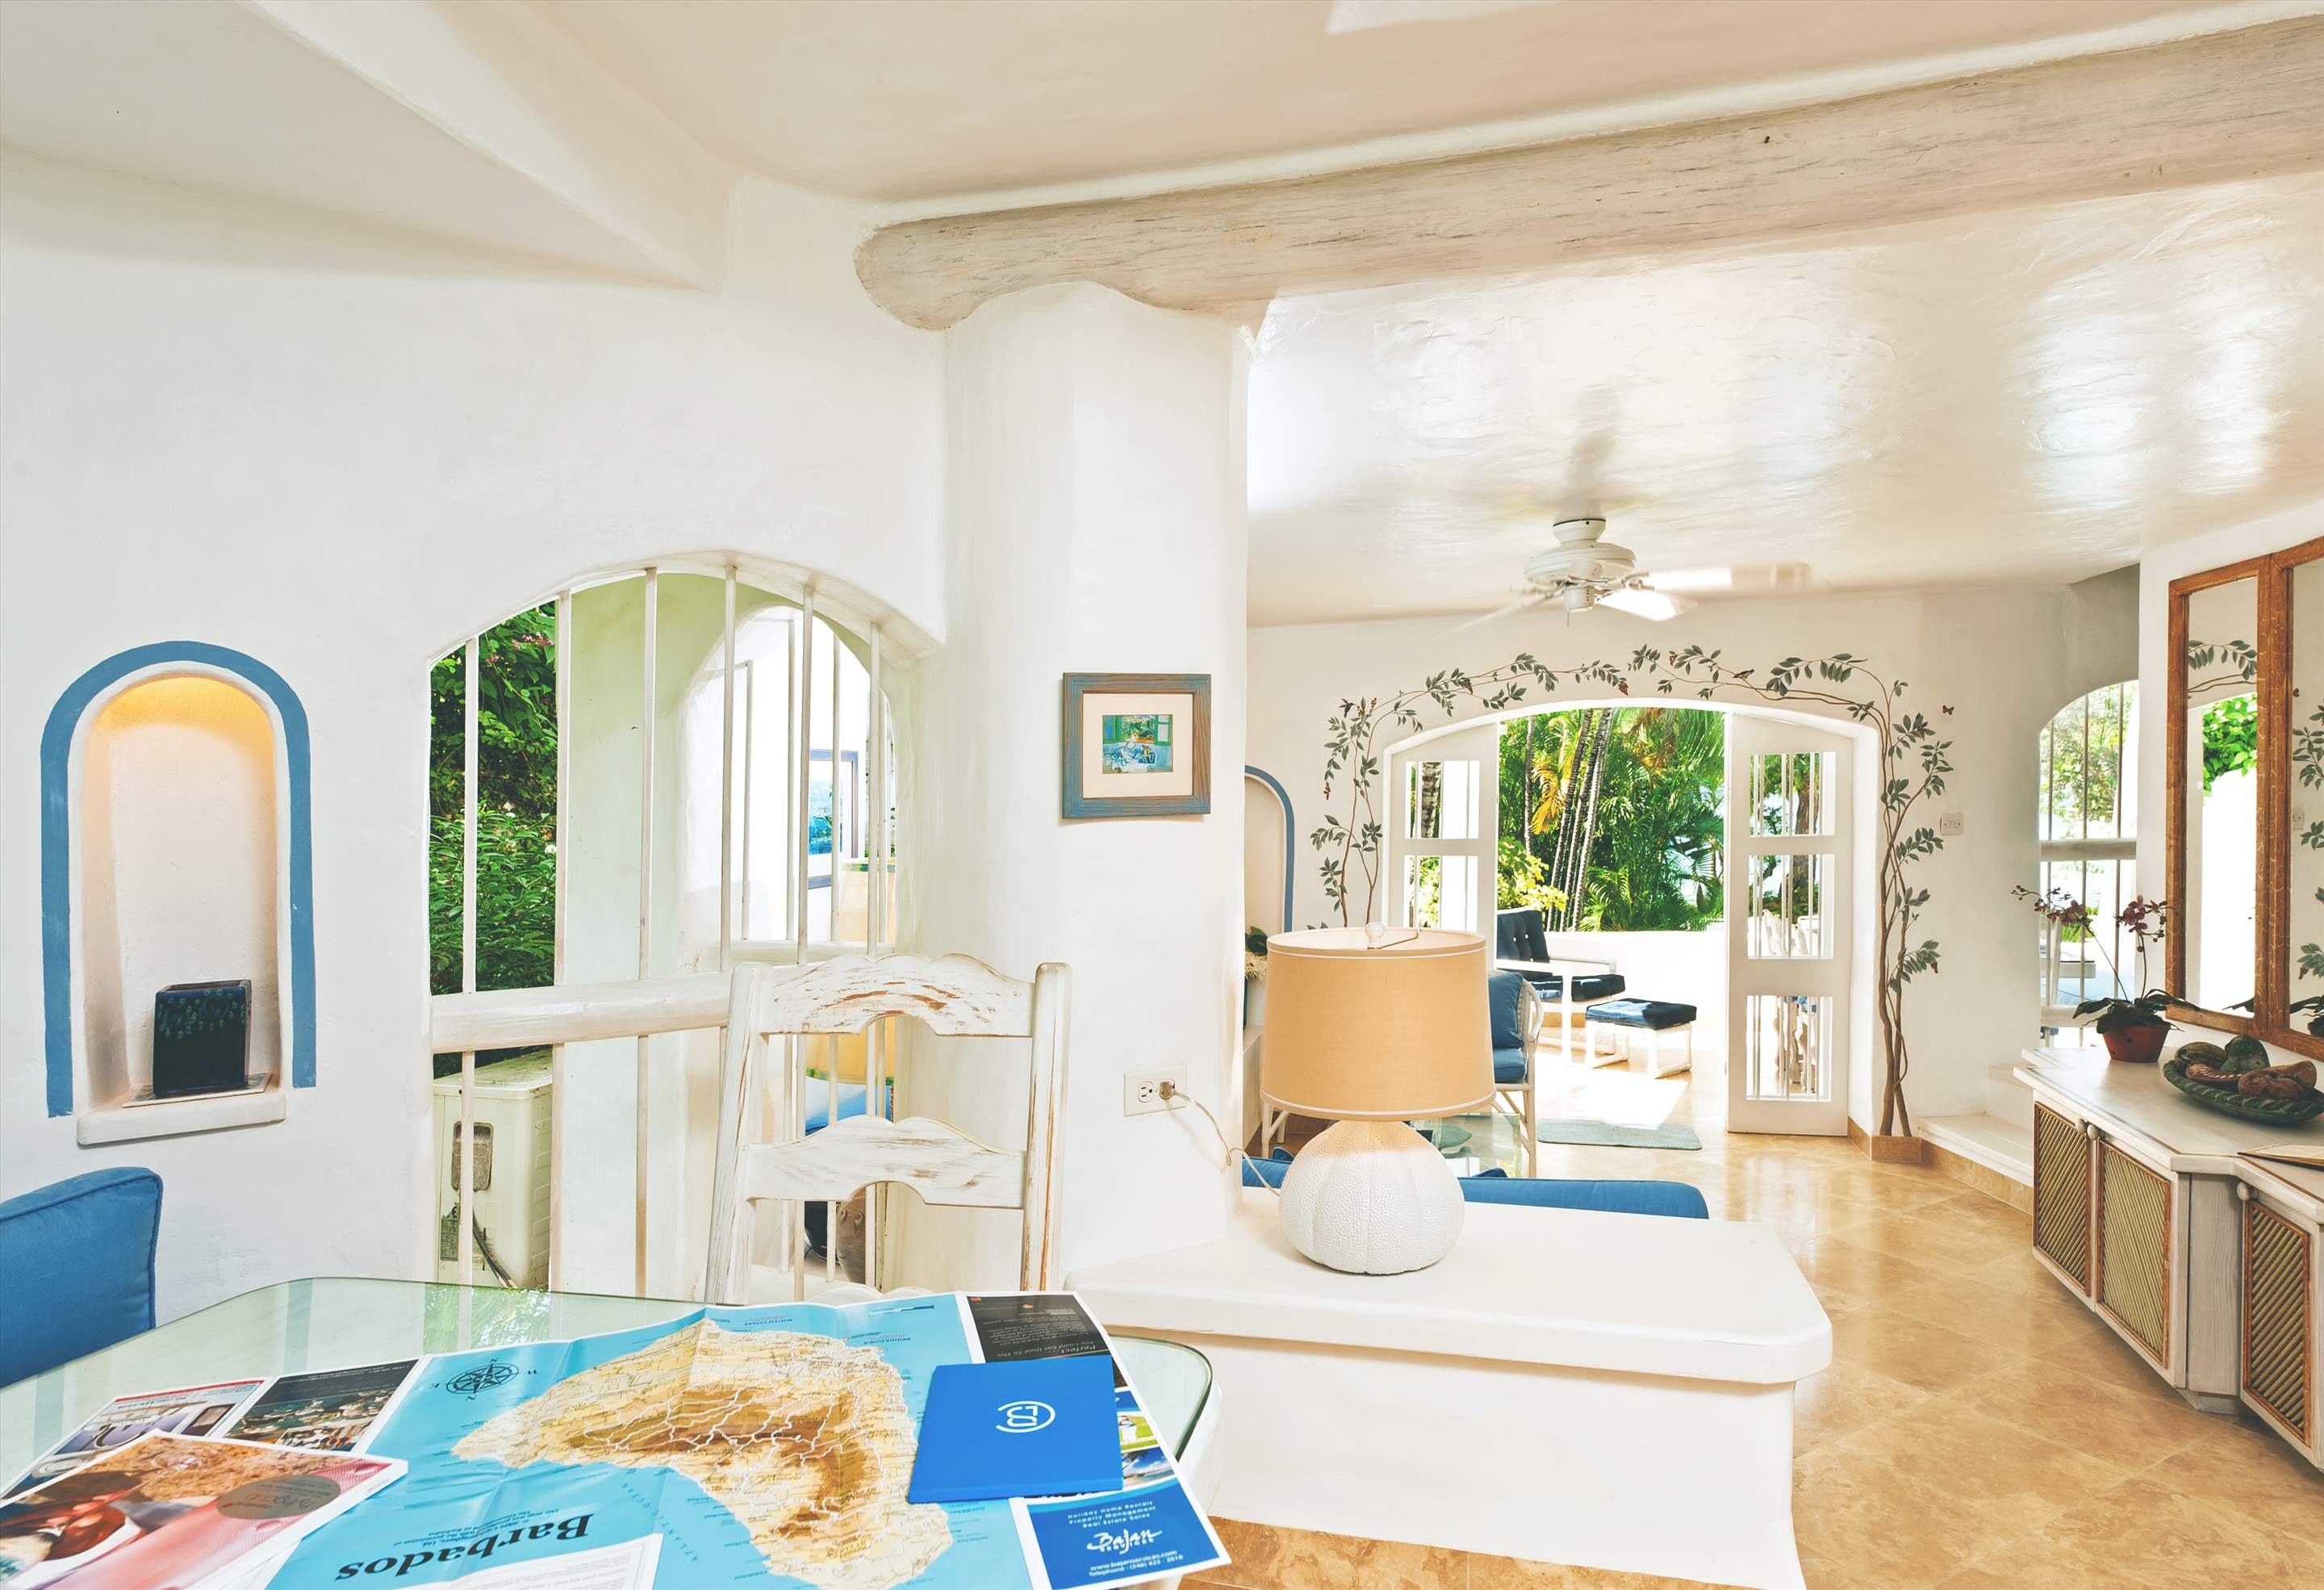 Merlin Bay Gingerbread, 3 bedroom villa in St. James & West Coast, Barbados Photo #5